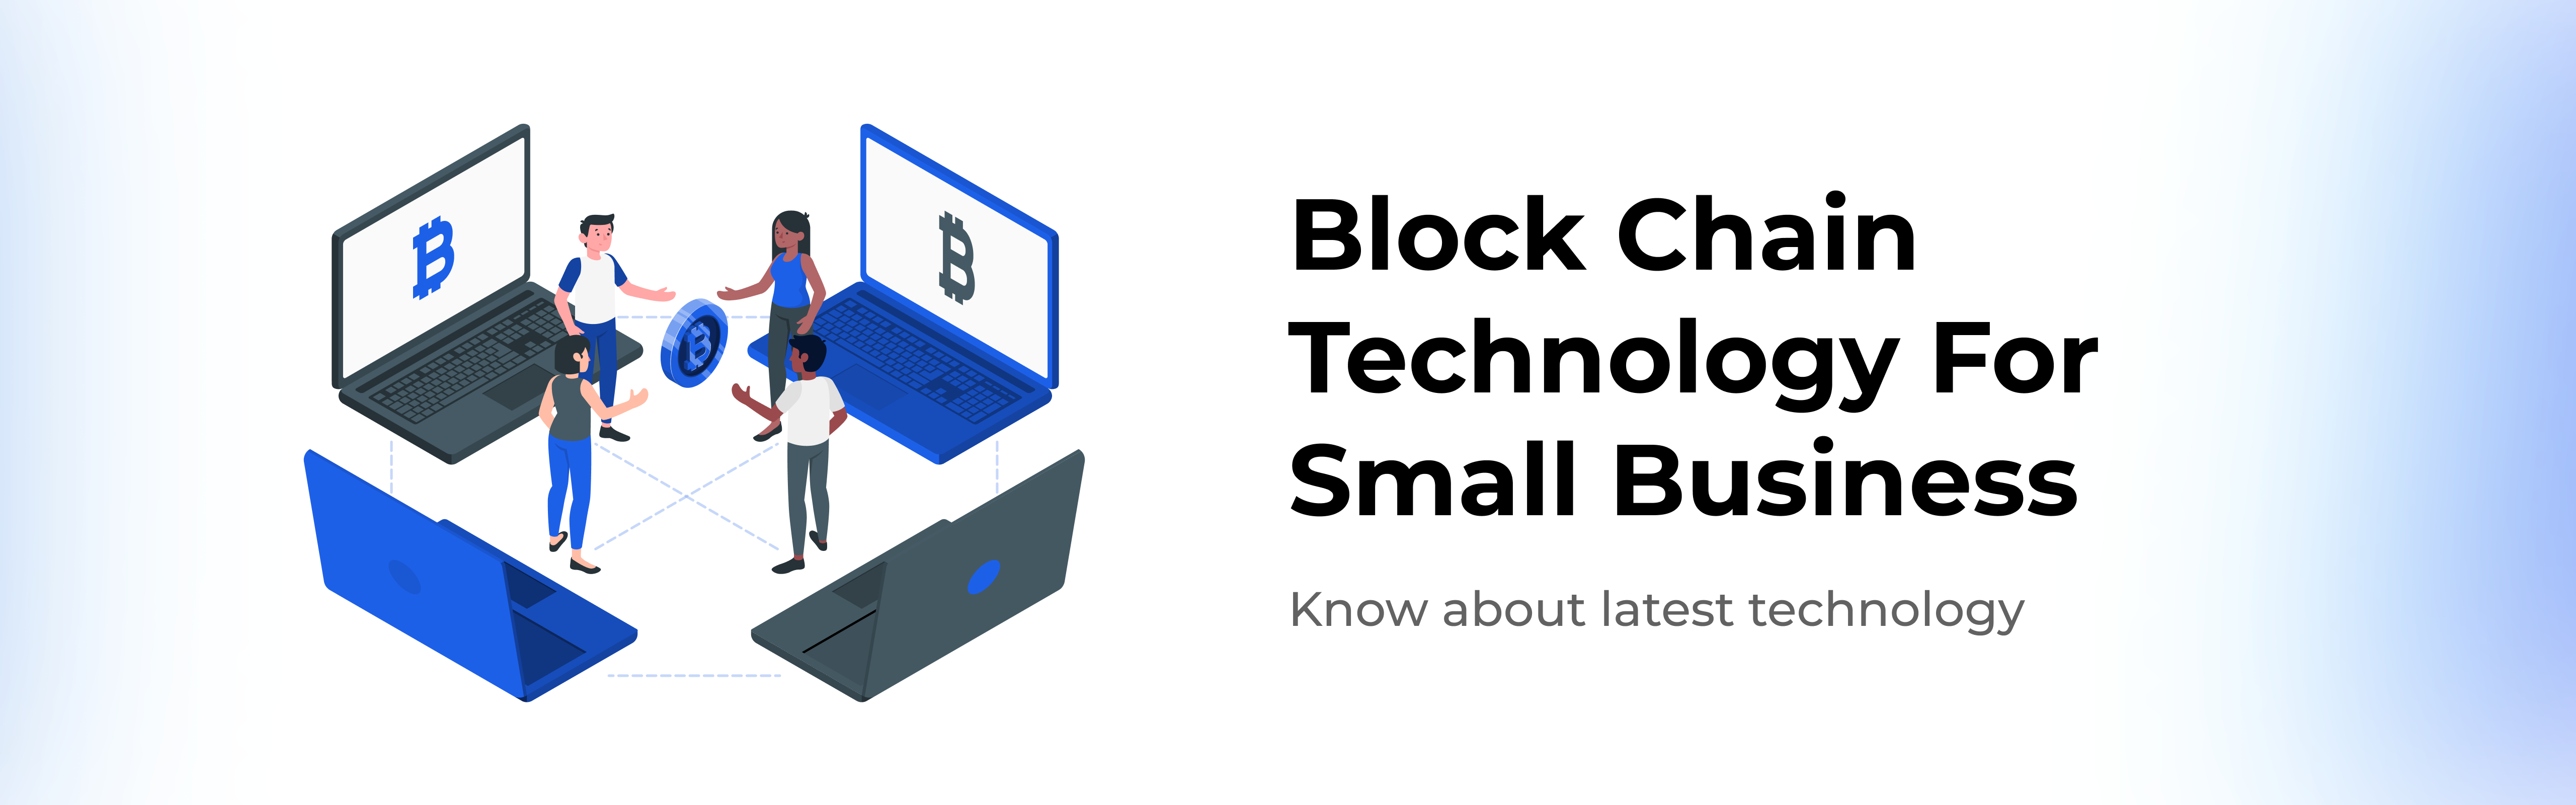 use-of-blockchain-technology-for-small-business